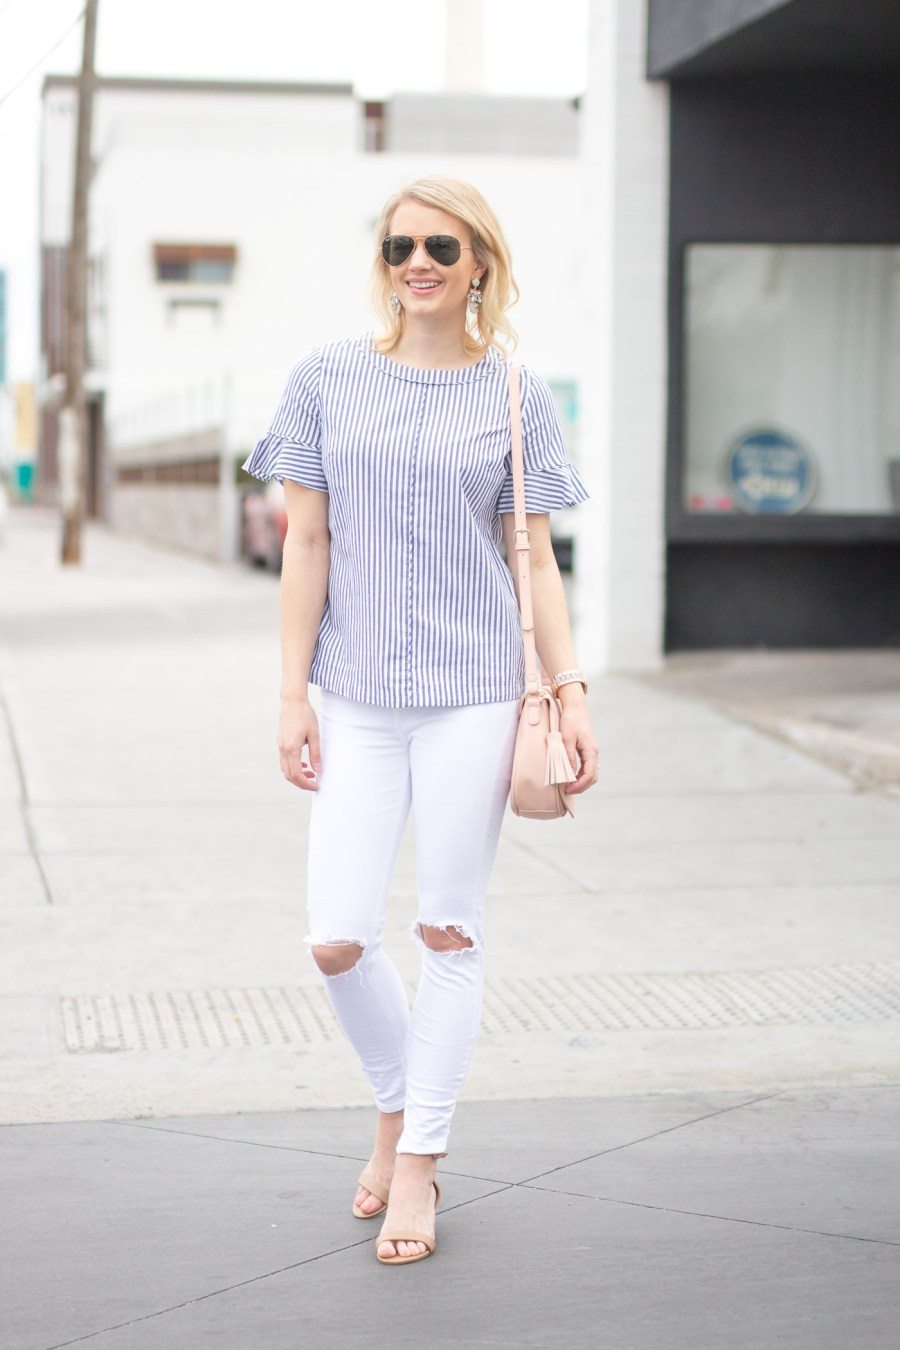 The Perfect Low Heels for Everyday Wear, Steve Madden Irenee sandal, fashion blog, spring outfit, Treats and Trends, Jamie Kamber